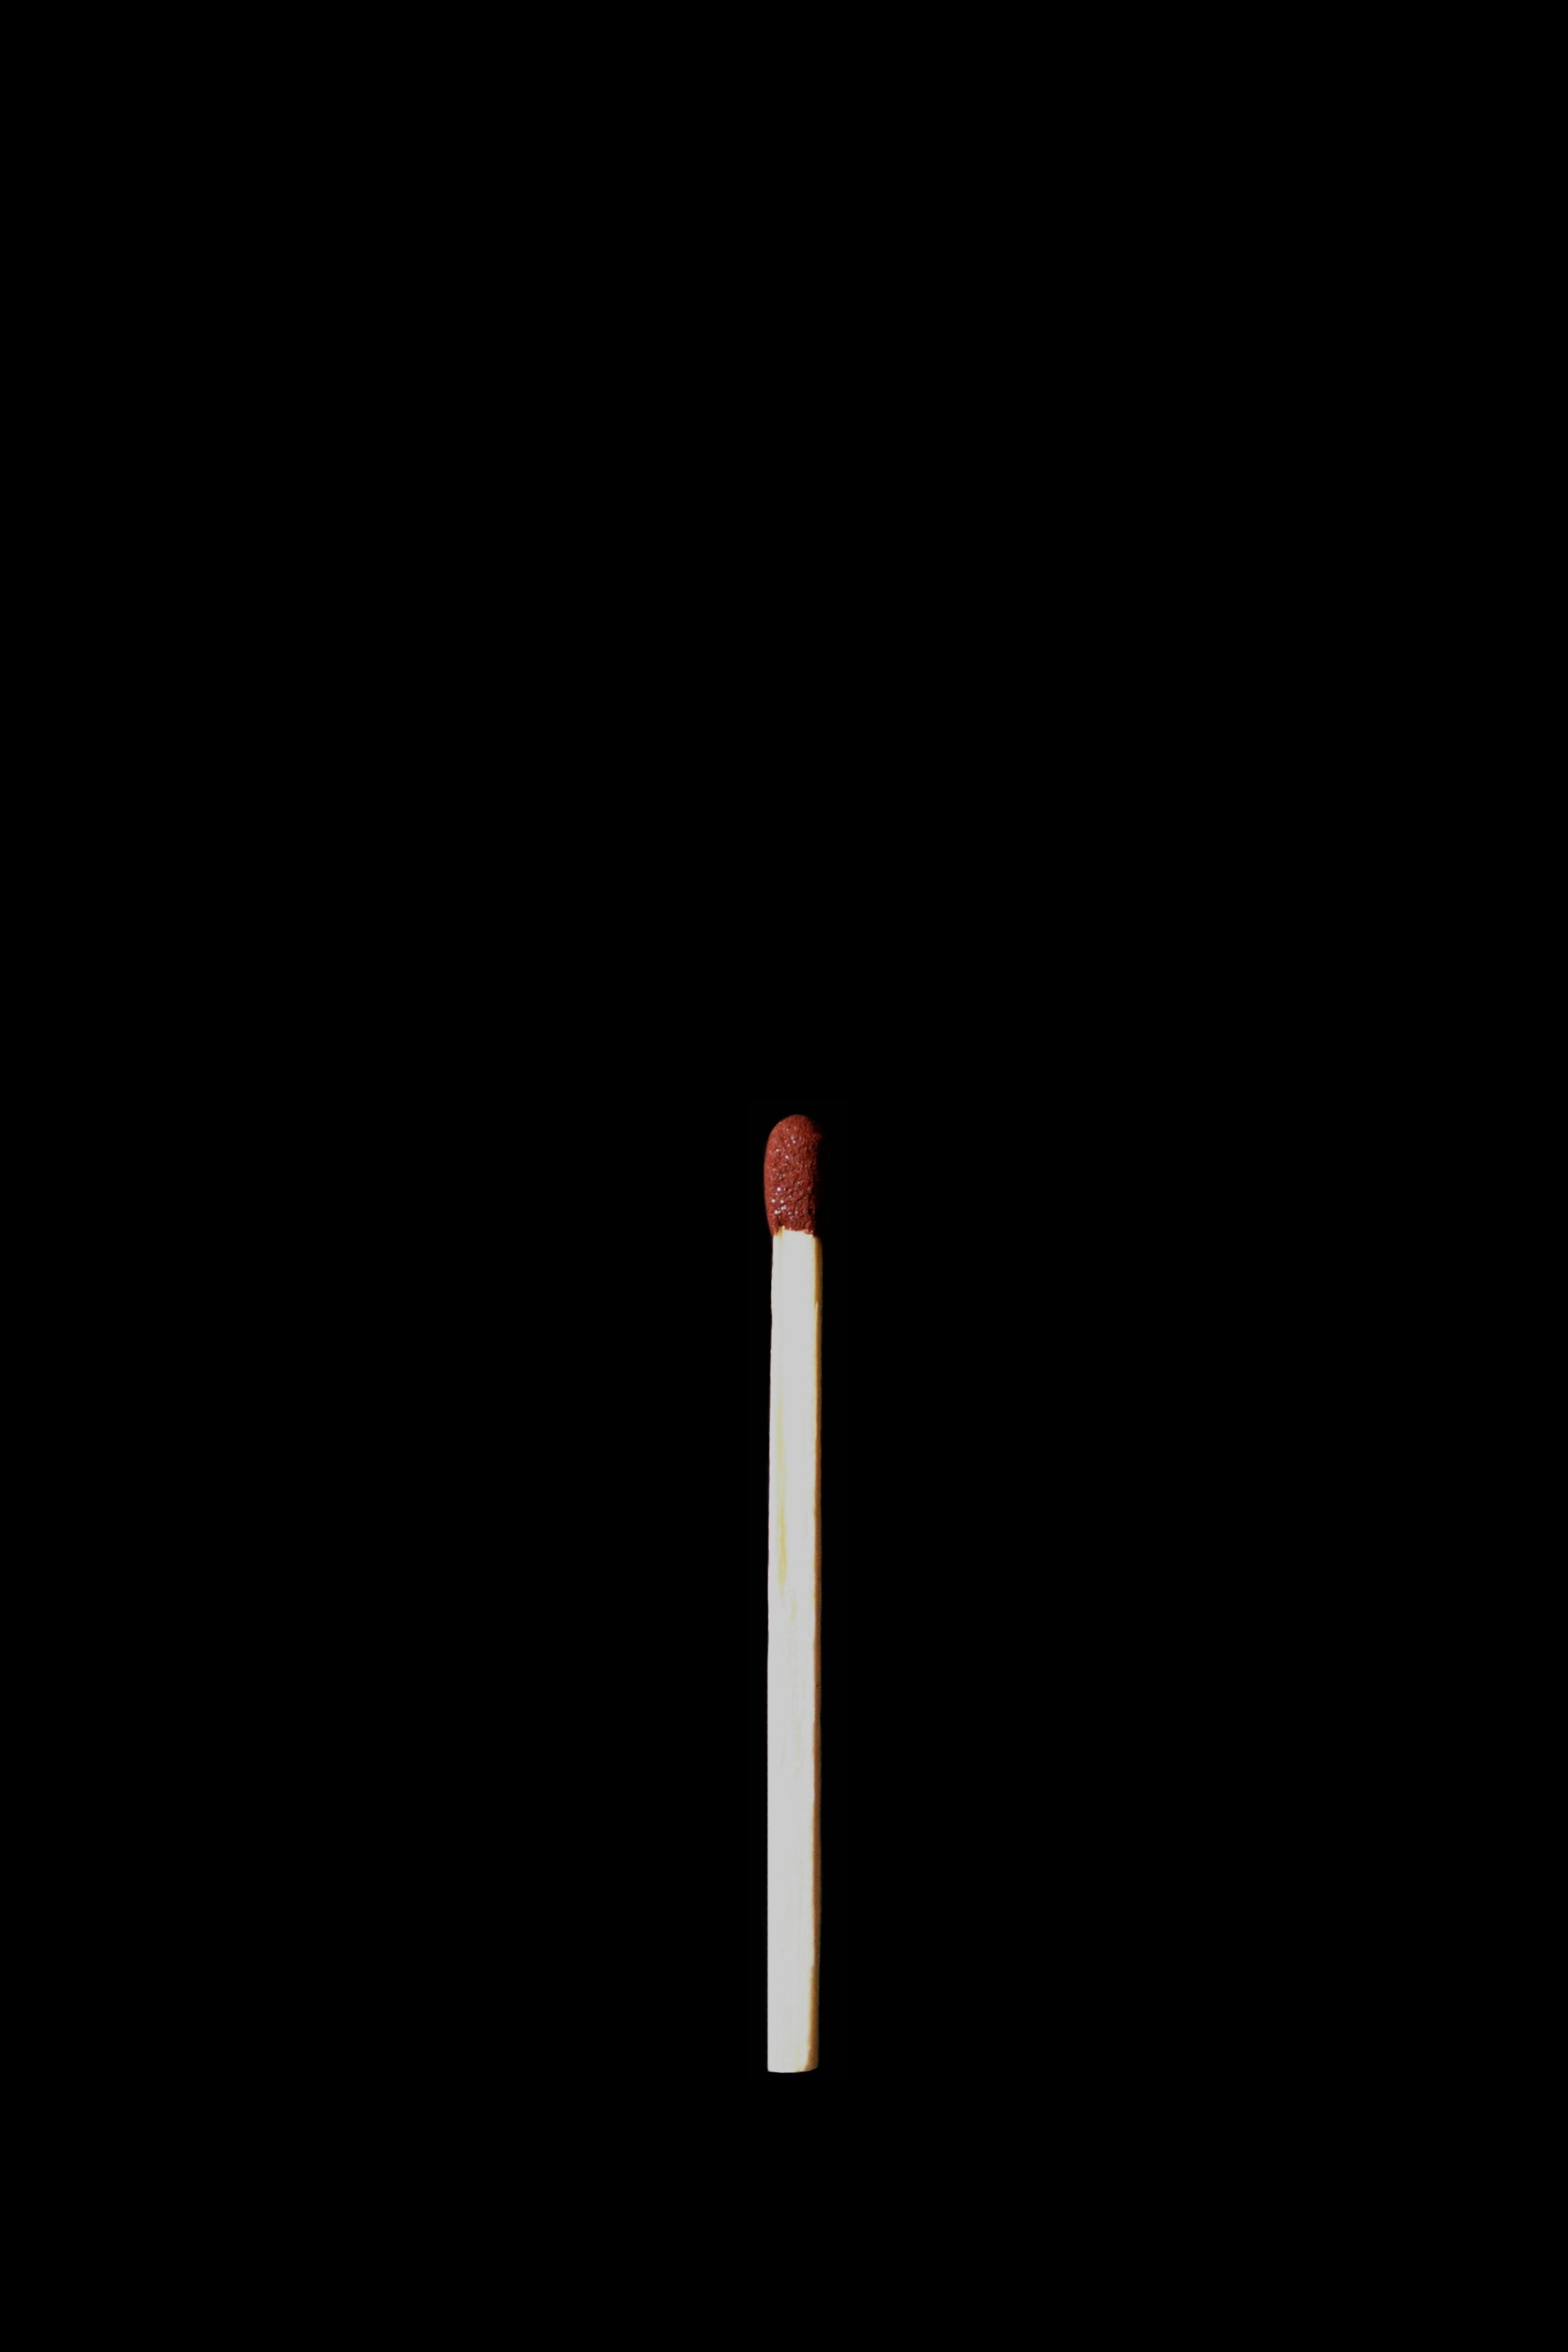 Lighted Matchstick On Brown Wooden Surface 183 Free Stock Photo